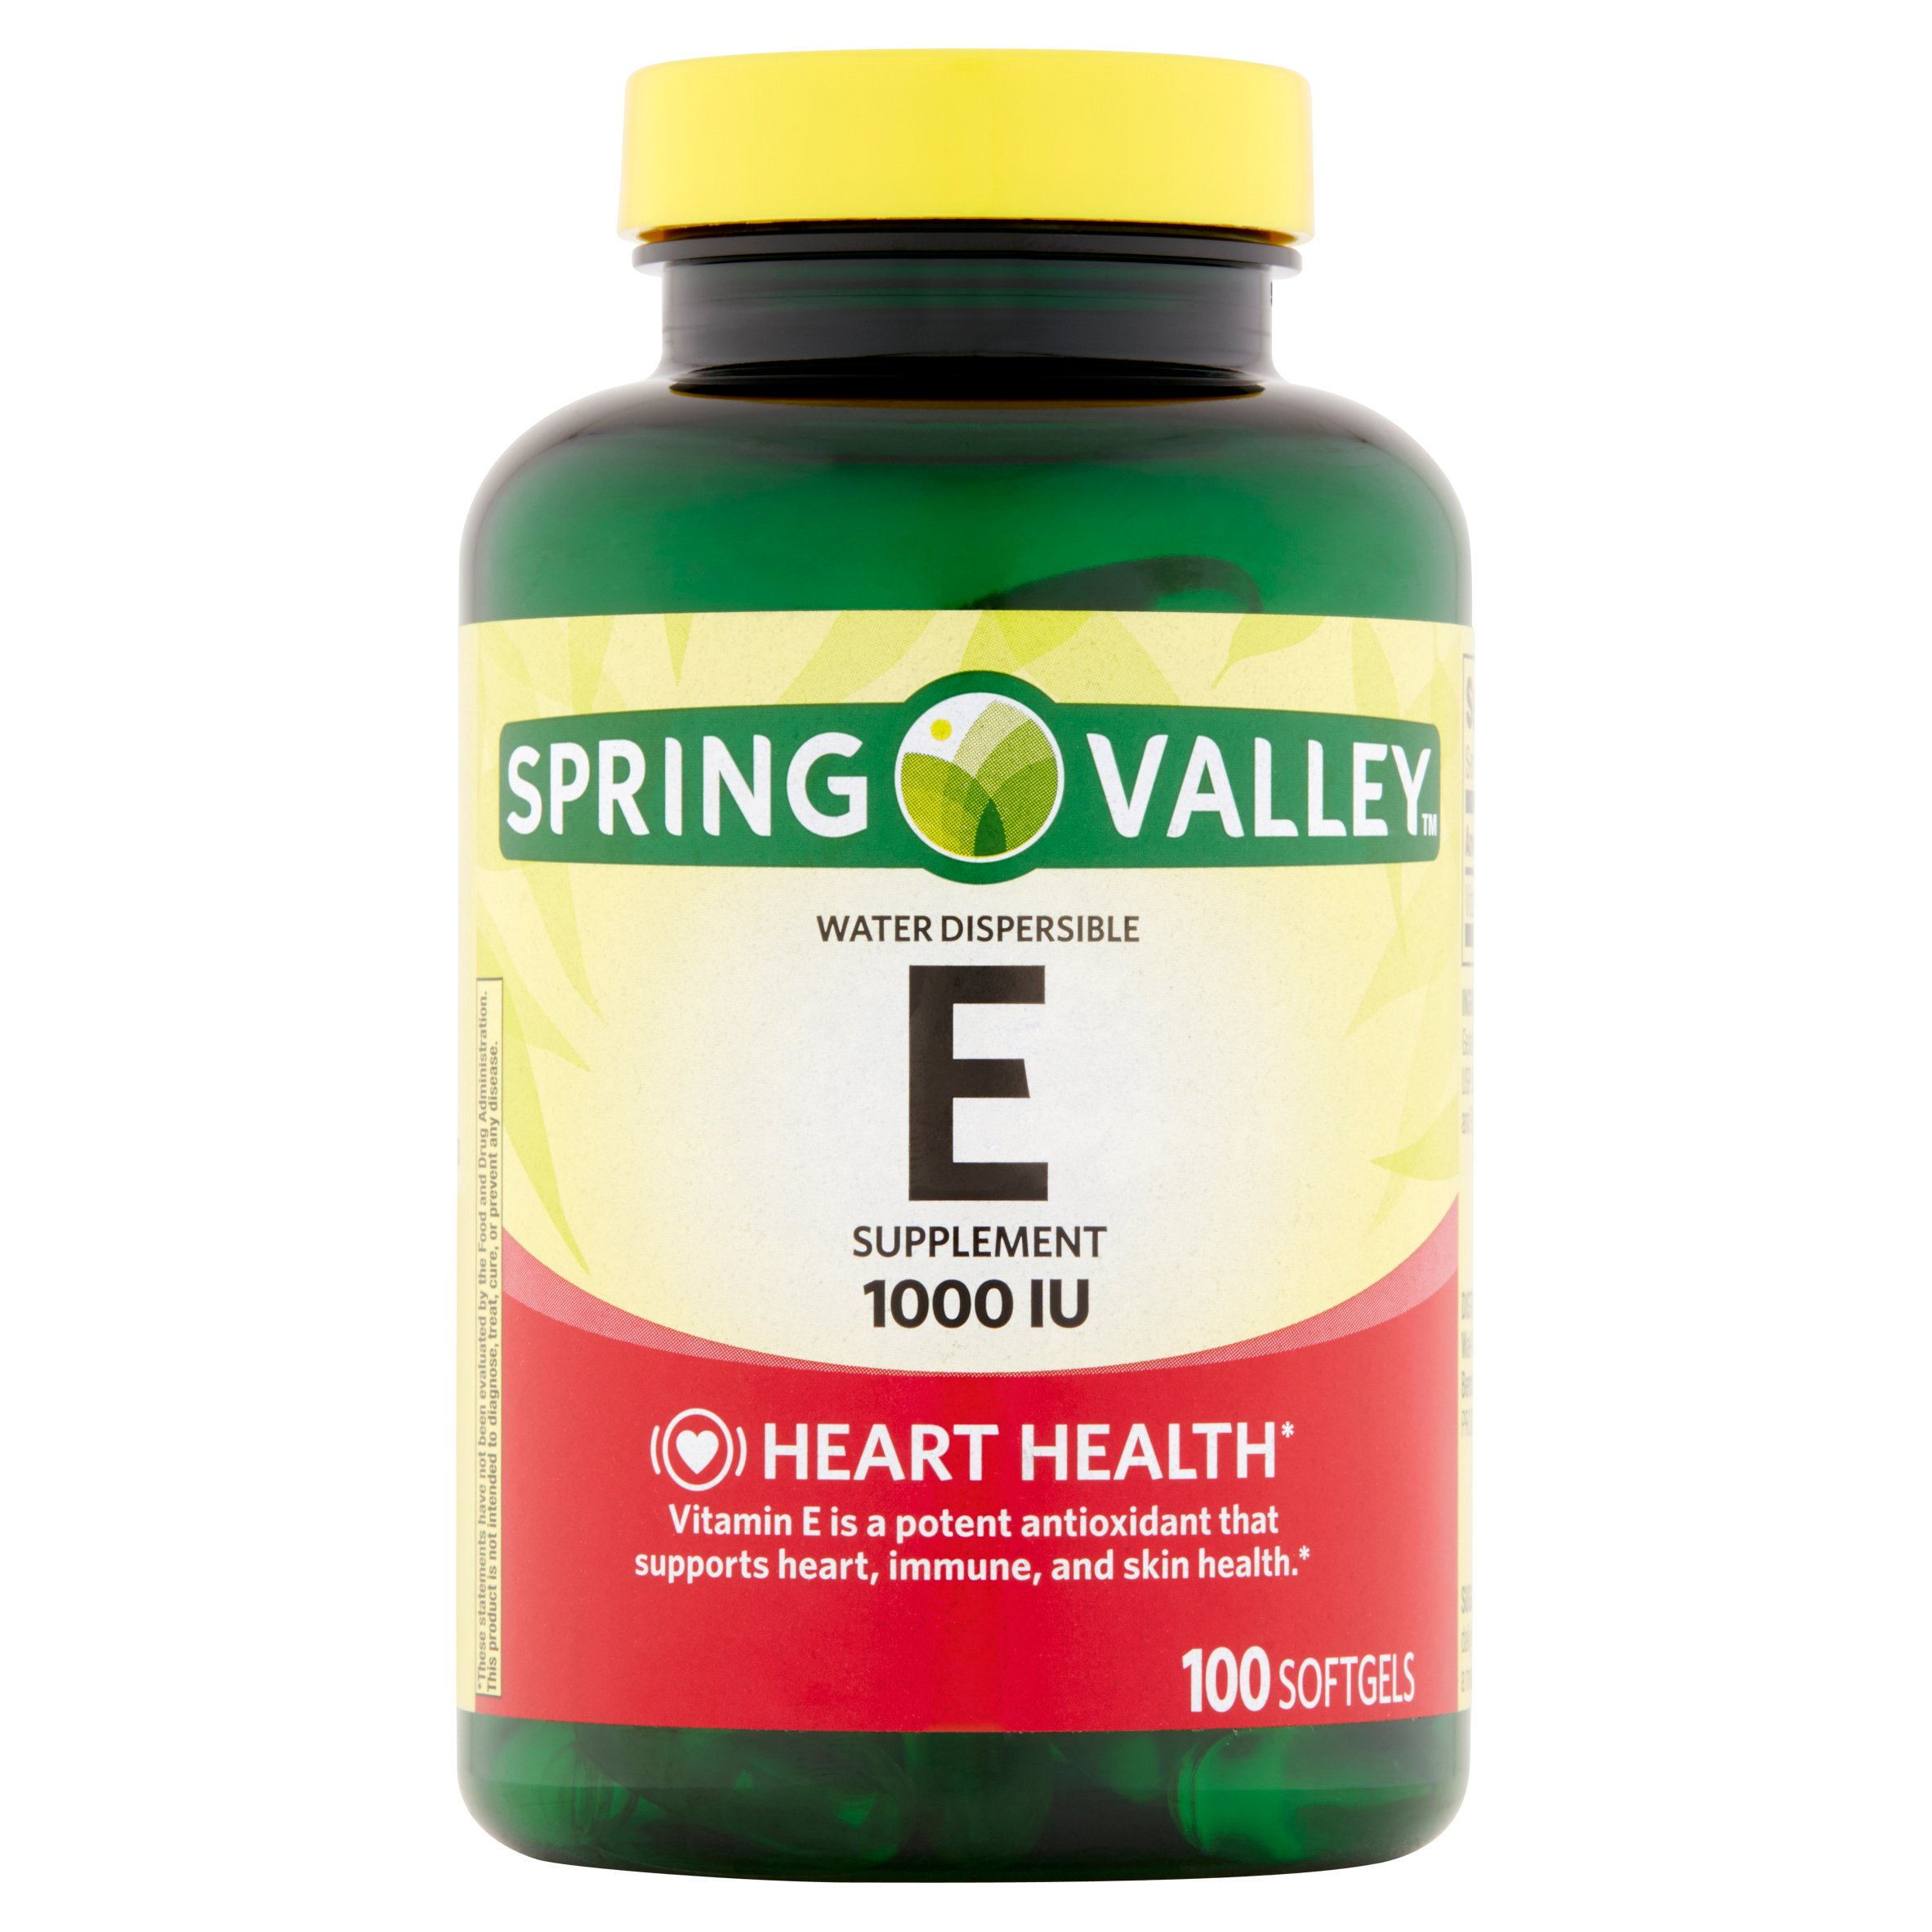 Spring Valley Water Dispersible E Supplement Softgels, 1000 IU, 100 count